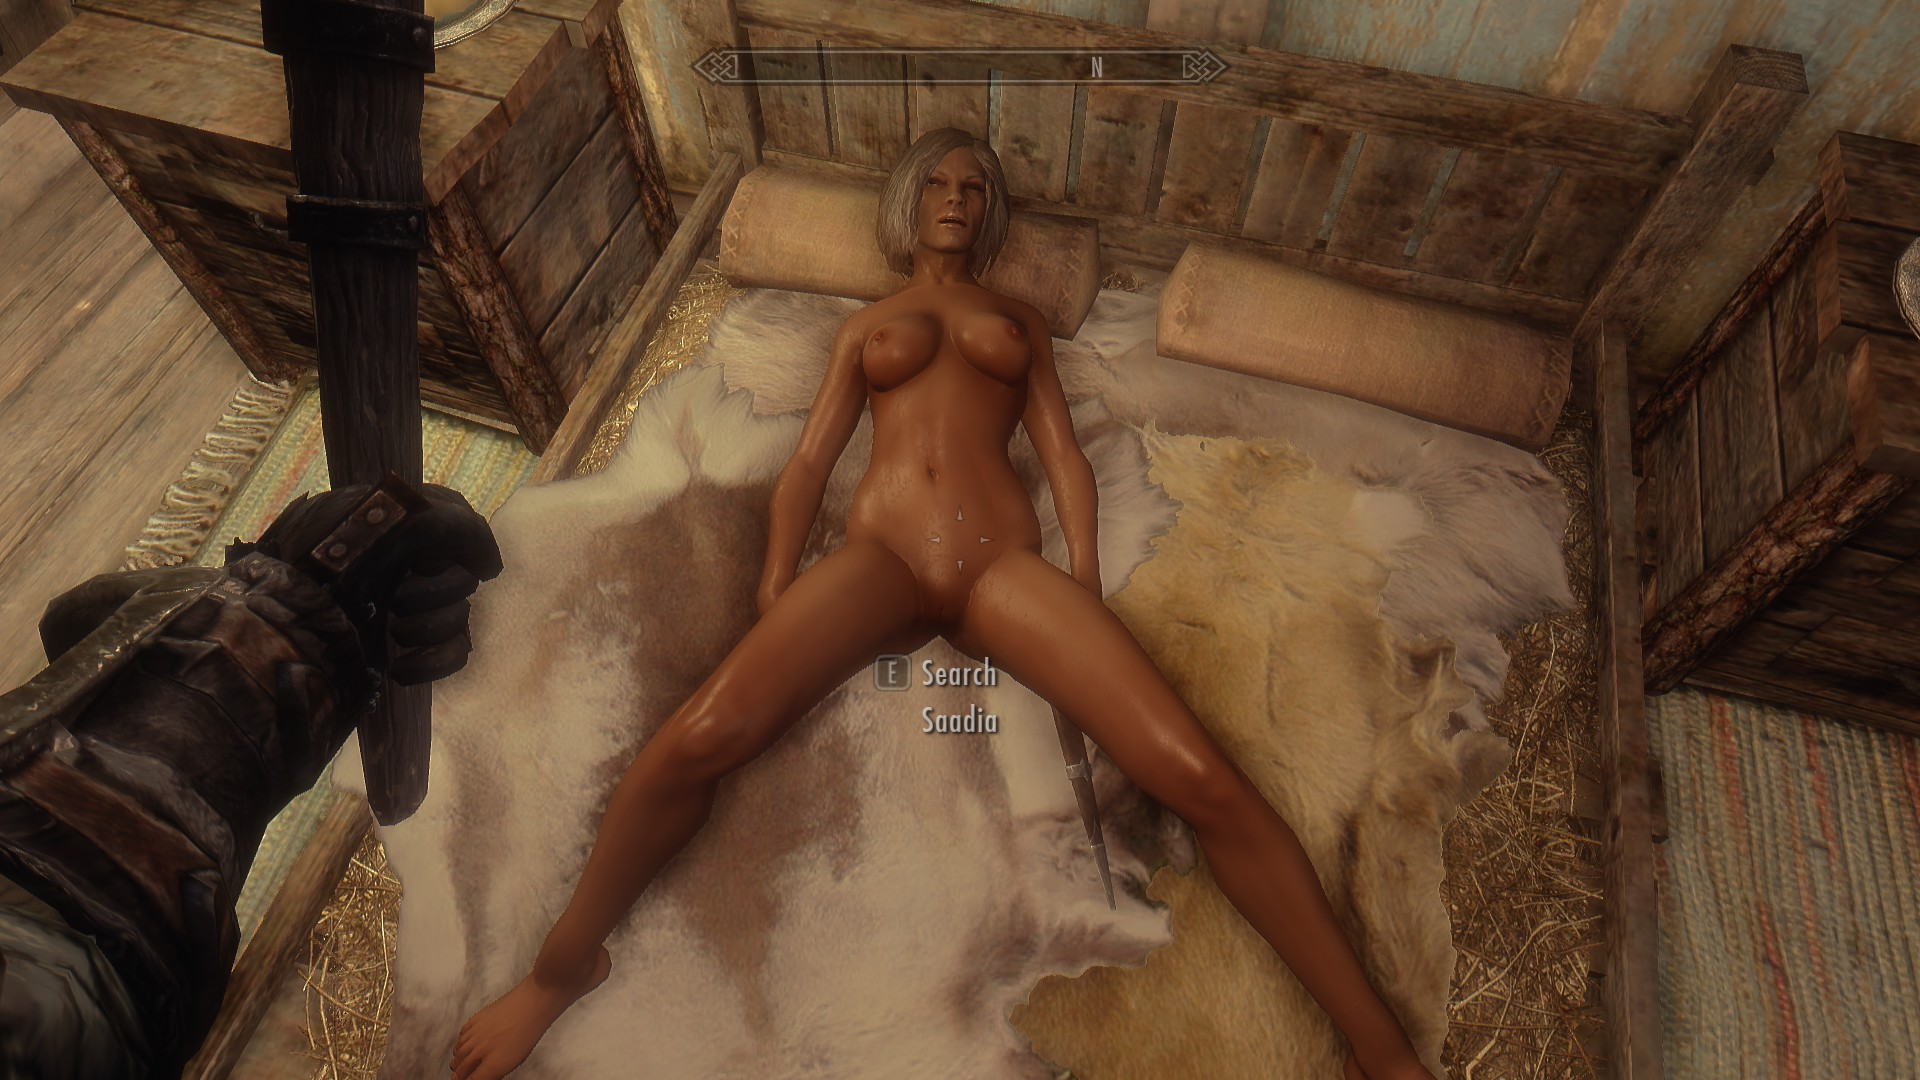 Oblivion nude cheat exploited images